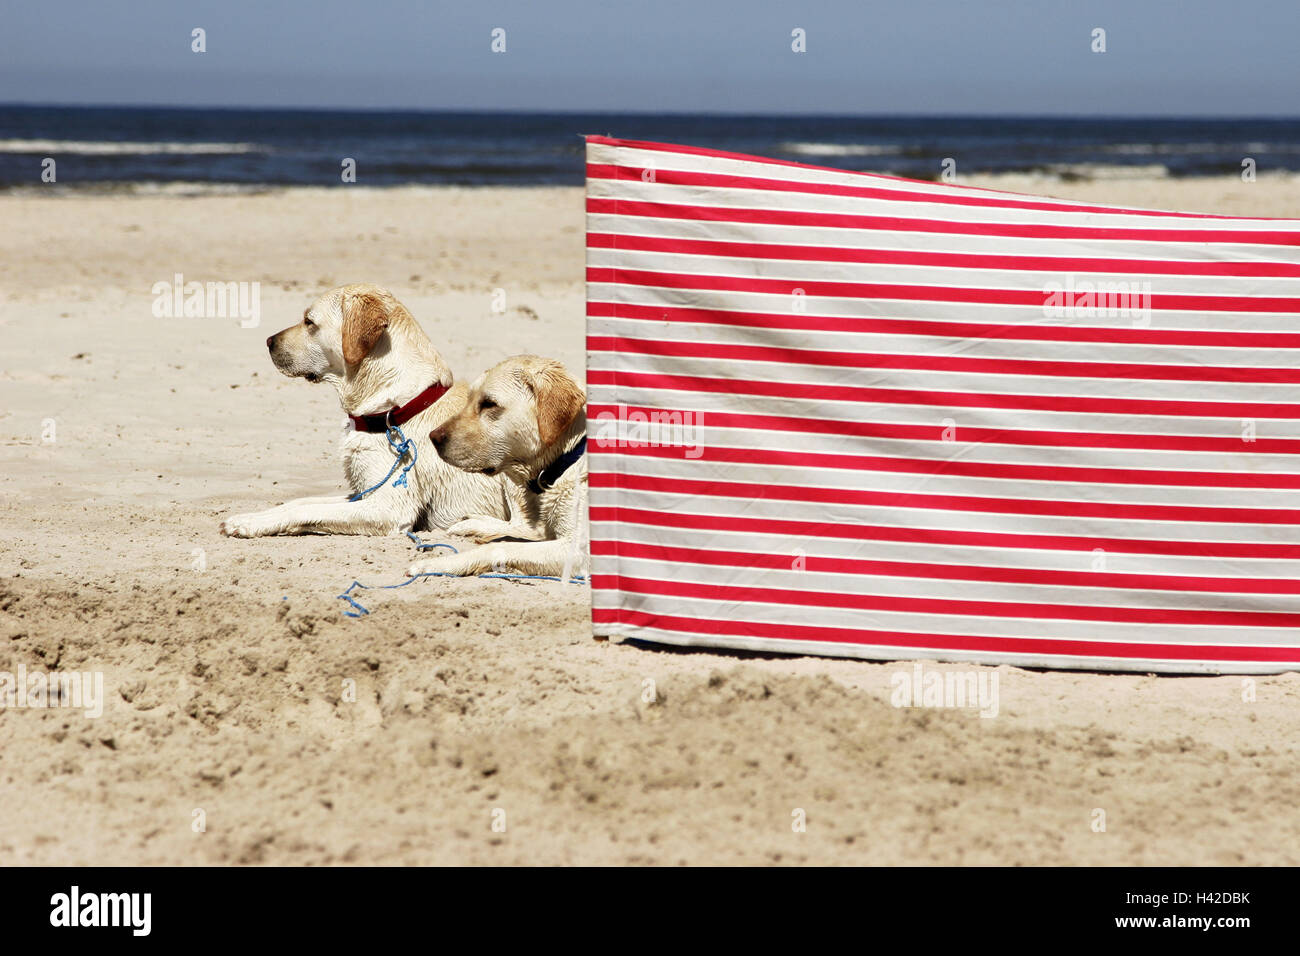 Beach, dogs, Retriever, lies, windbreak, red-know-striped, animals, two, pets, religiously, obedience, allows, dog - Stock Image